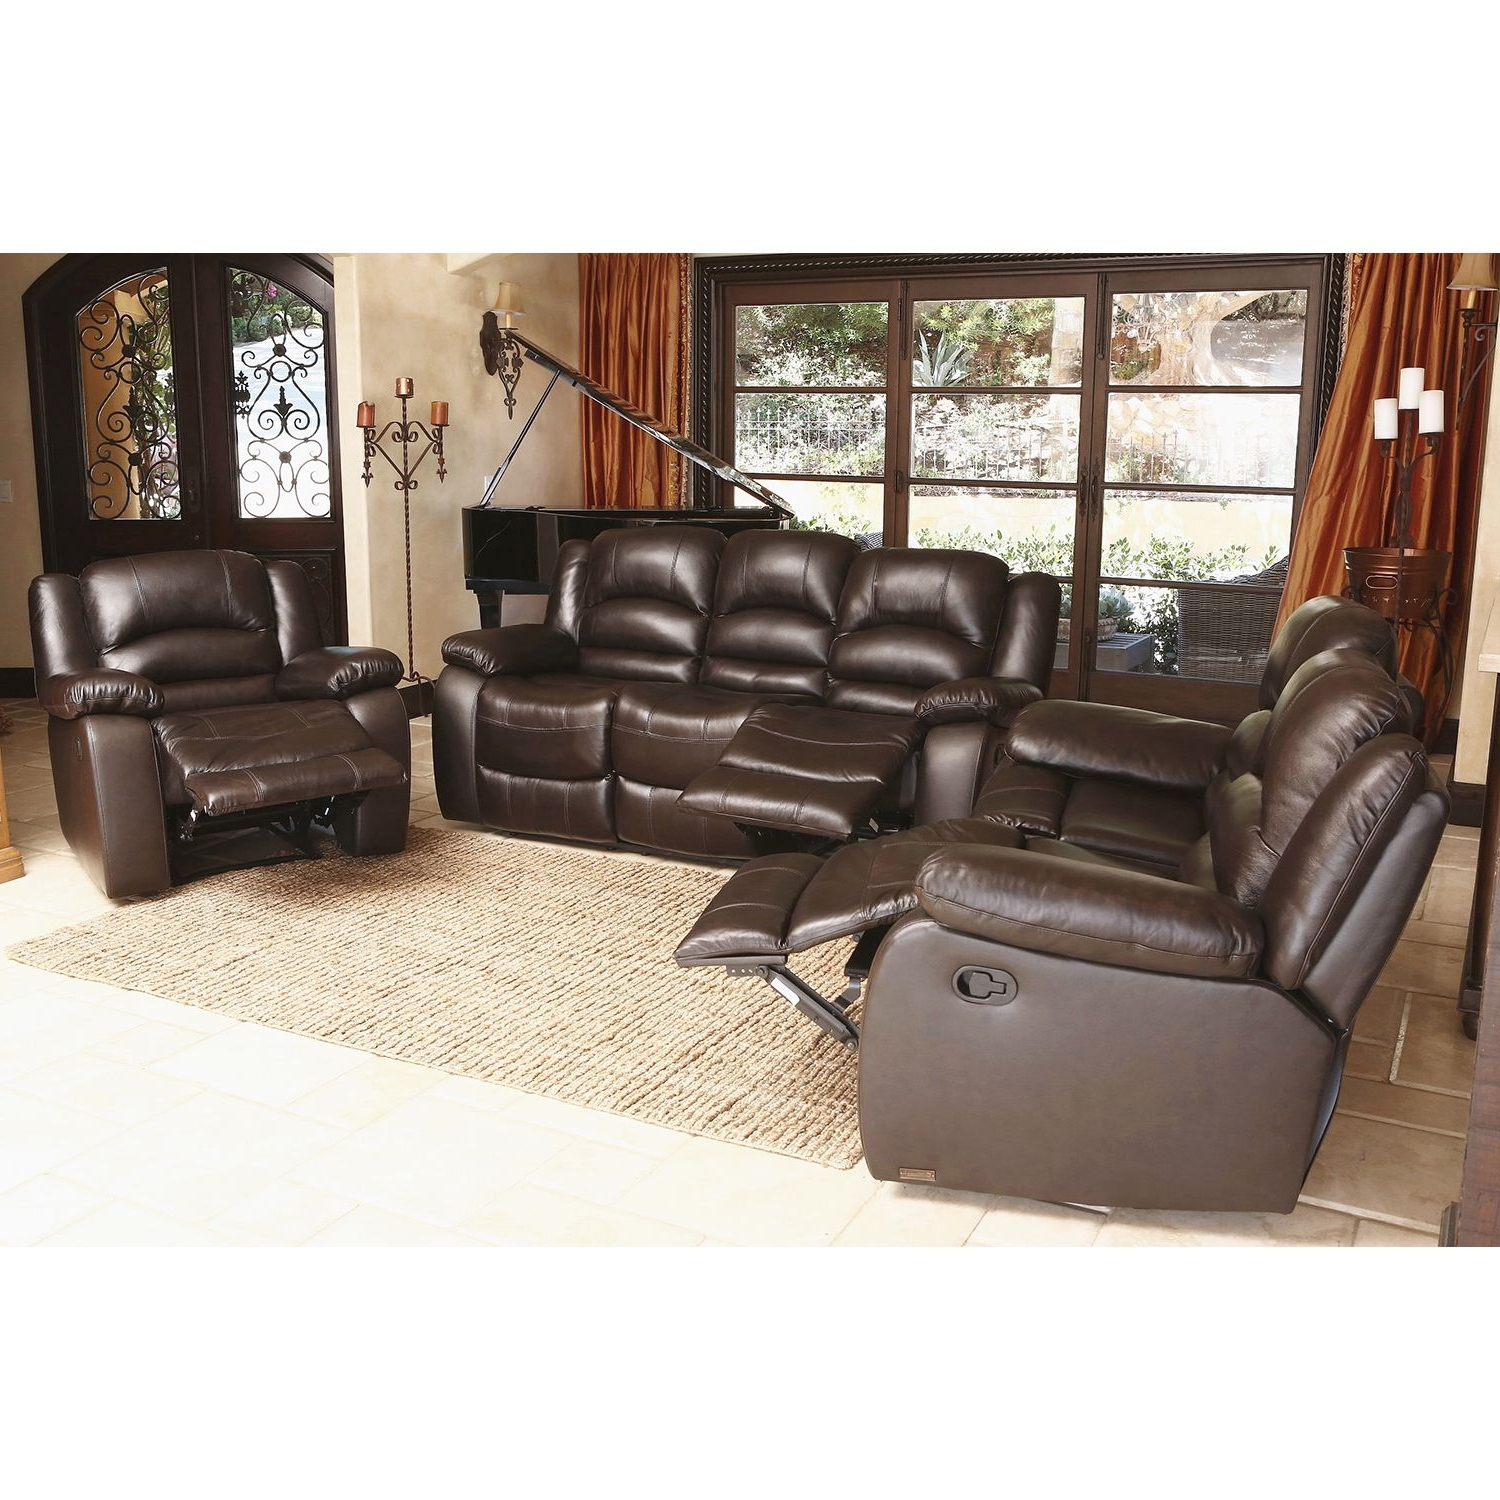 Sams Club Sectional Sofas Regarding Fashionable Genuine Leather Sectional Costco Living Room Furniture Top Grain (View 5 of 15)